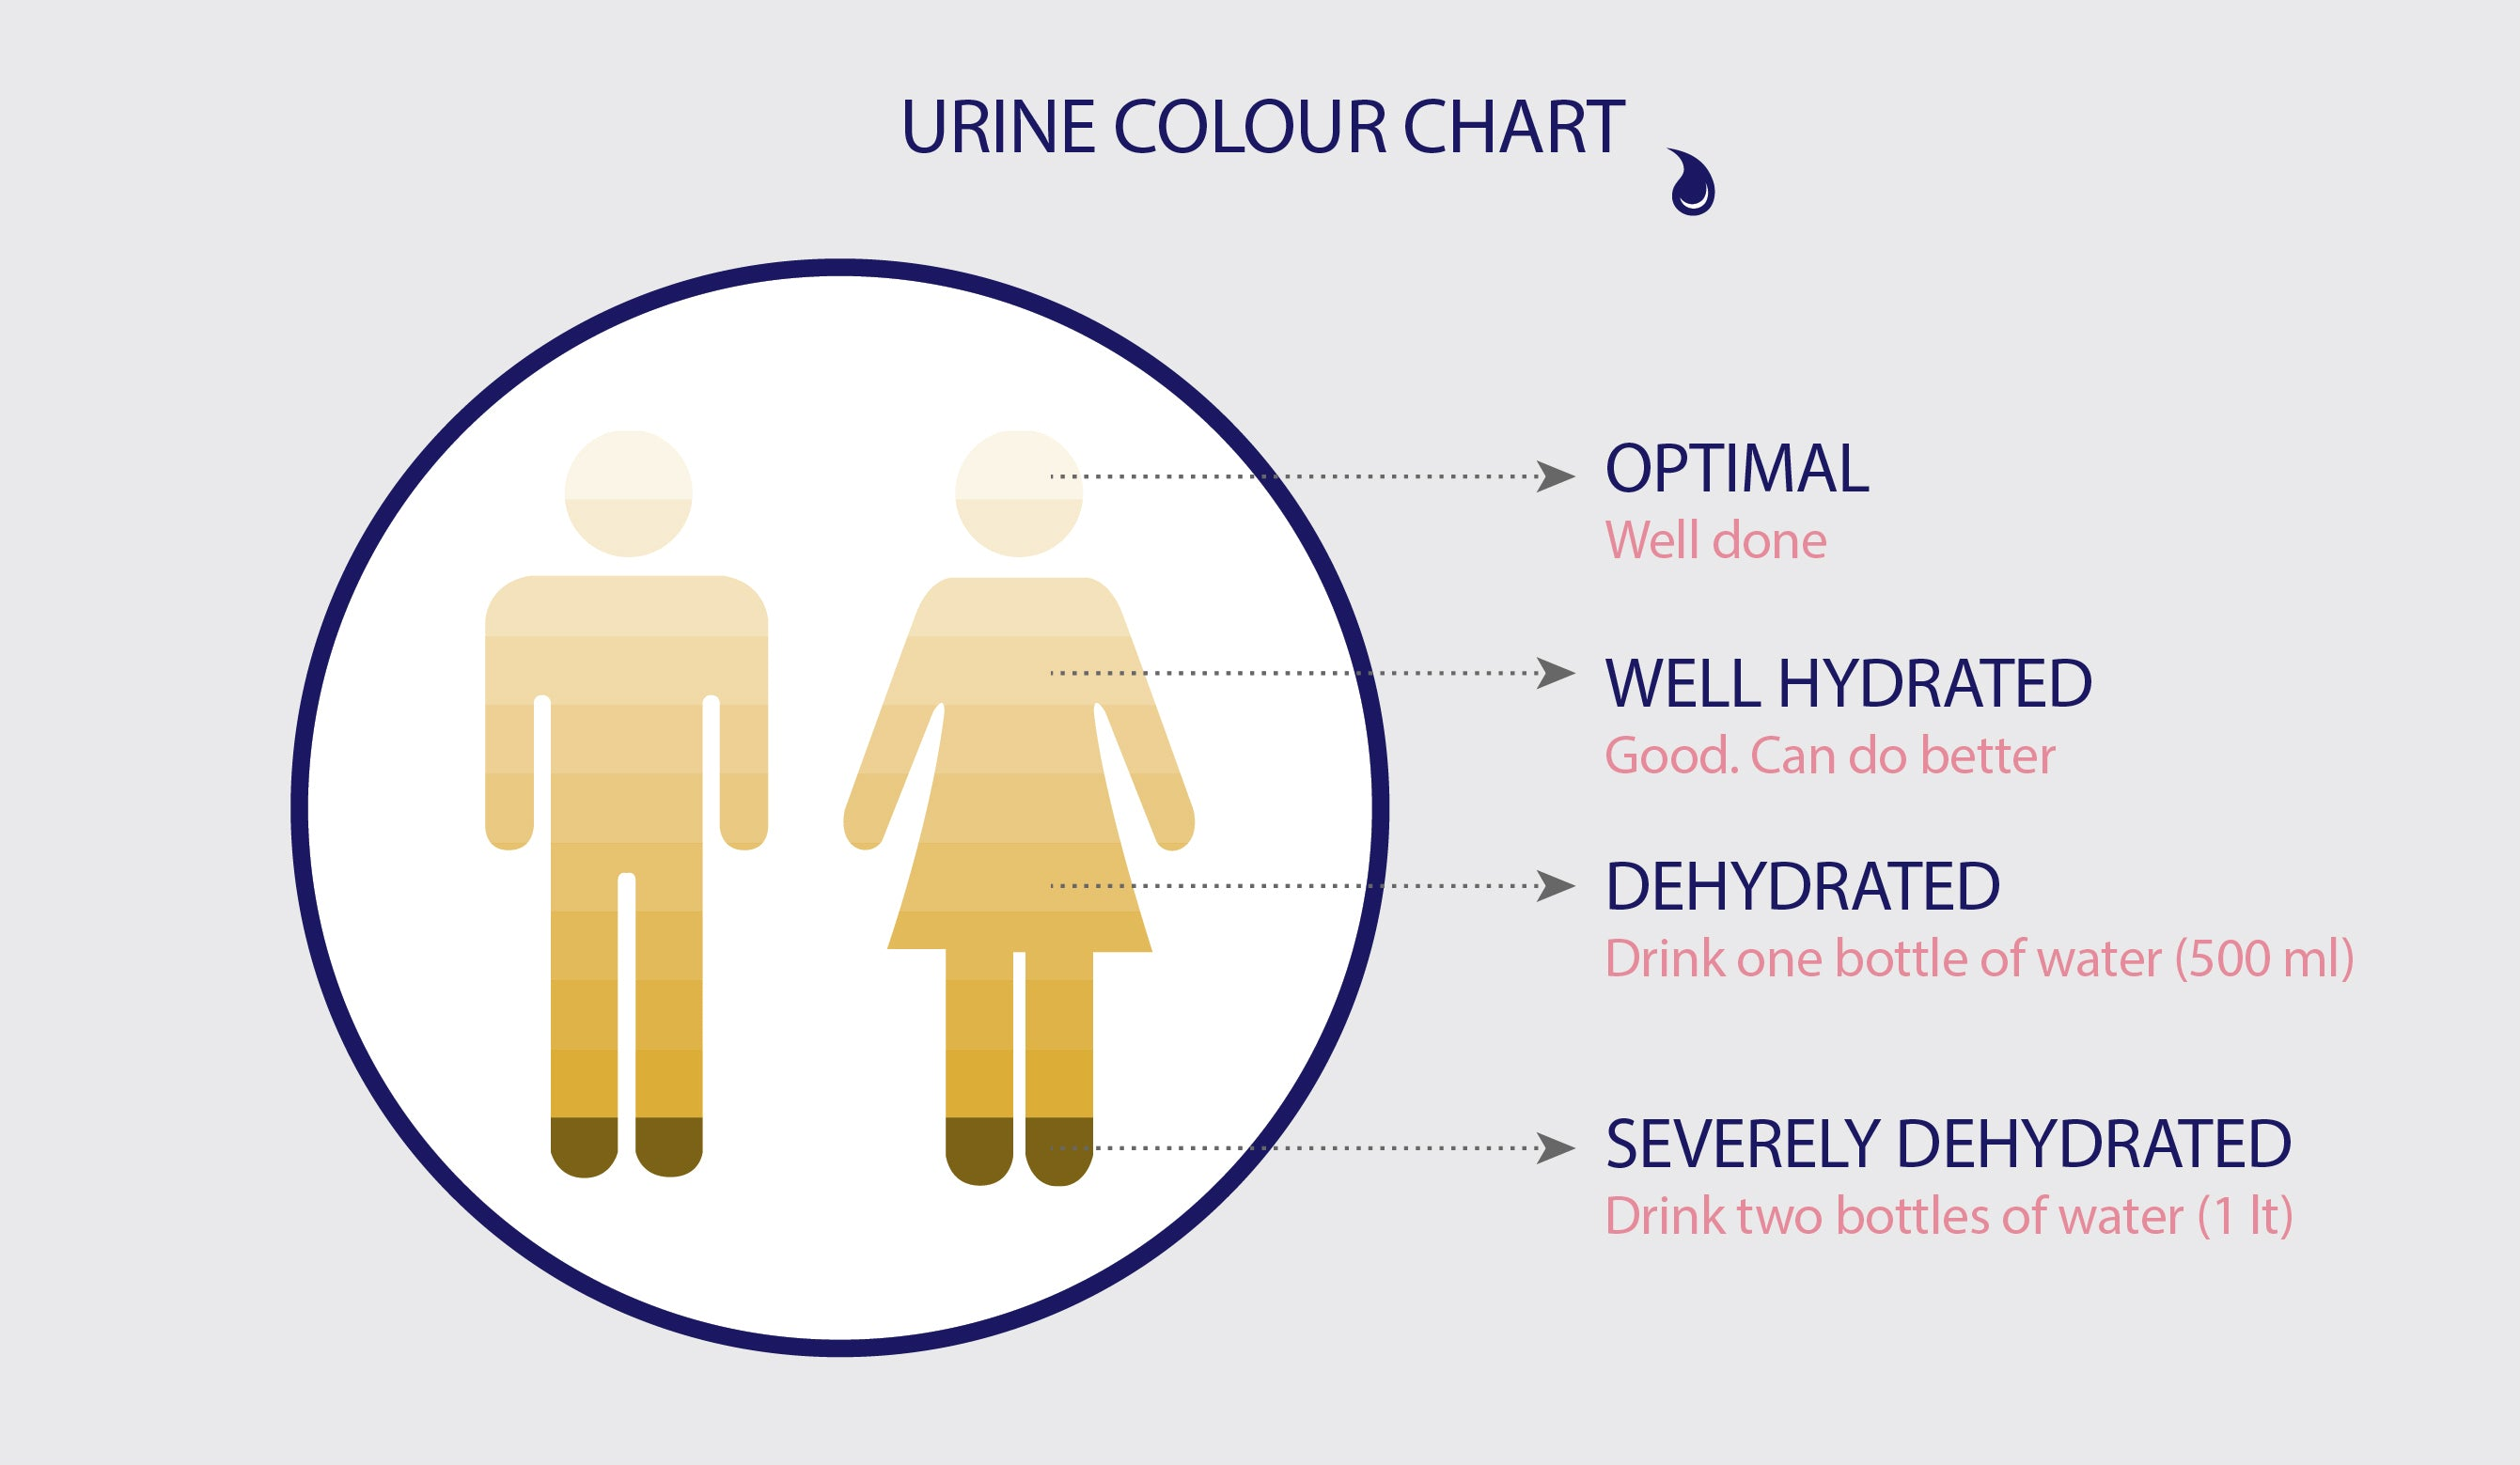 Dark yellow urine could mean you are severely dehydrated